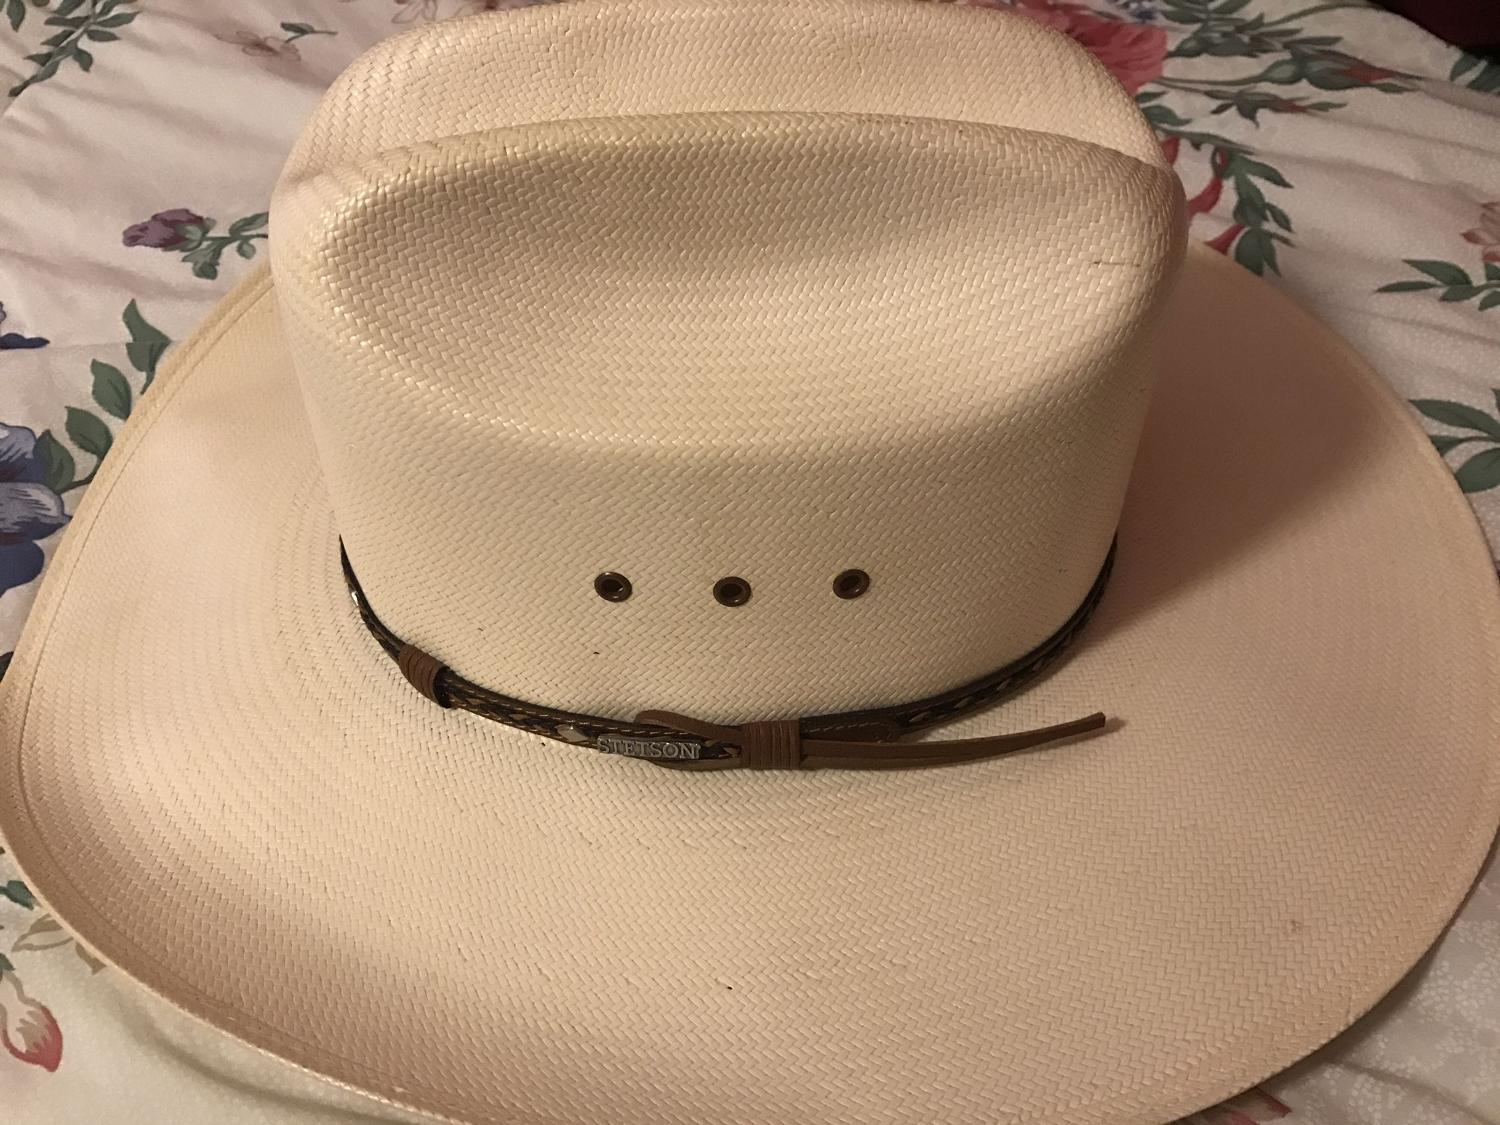 4f7a0f5b0 Men's Stetson cowboy hat PRICE REDUCED!